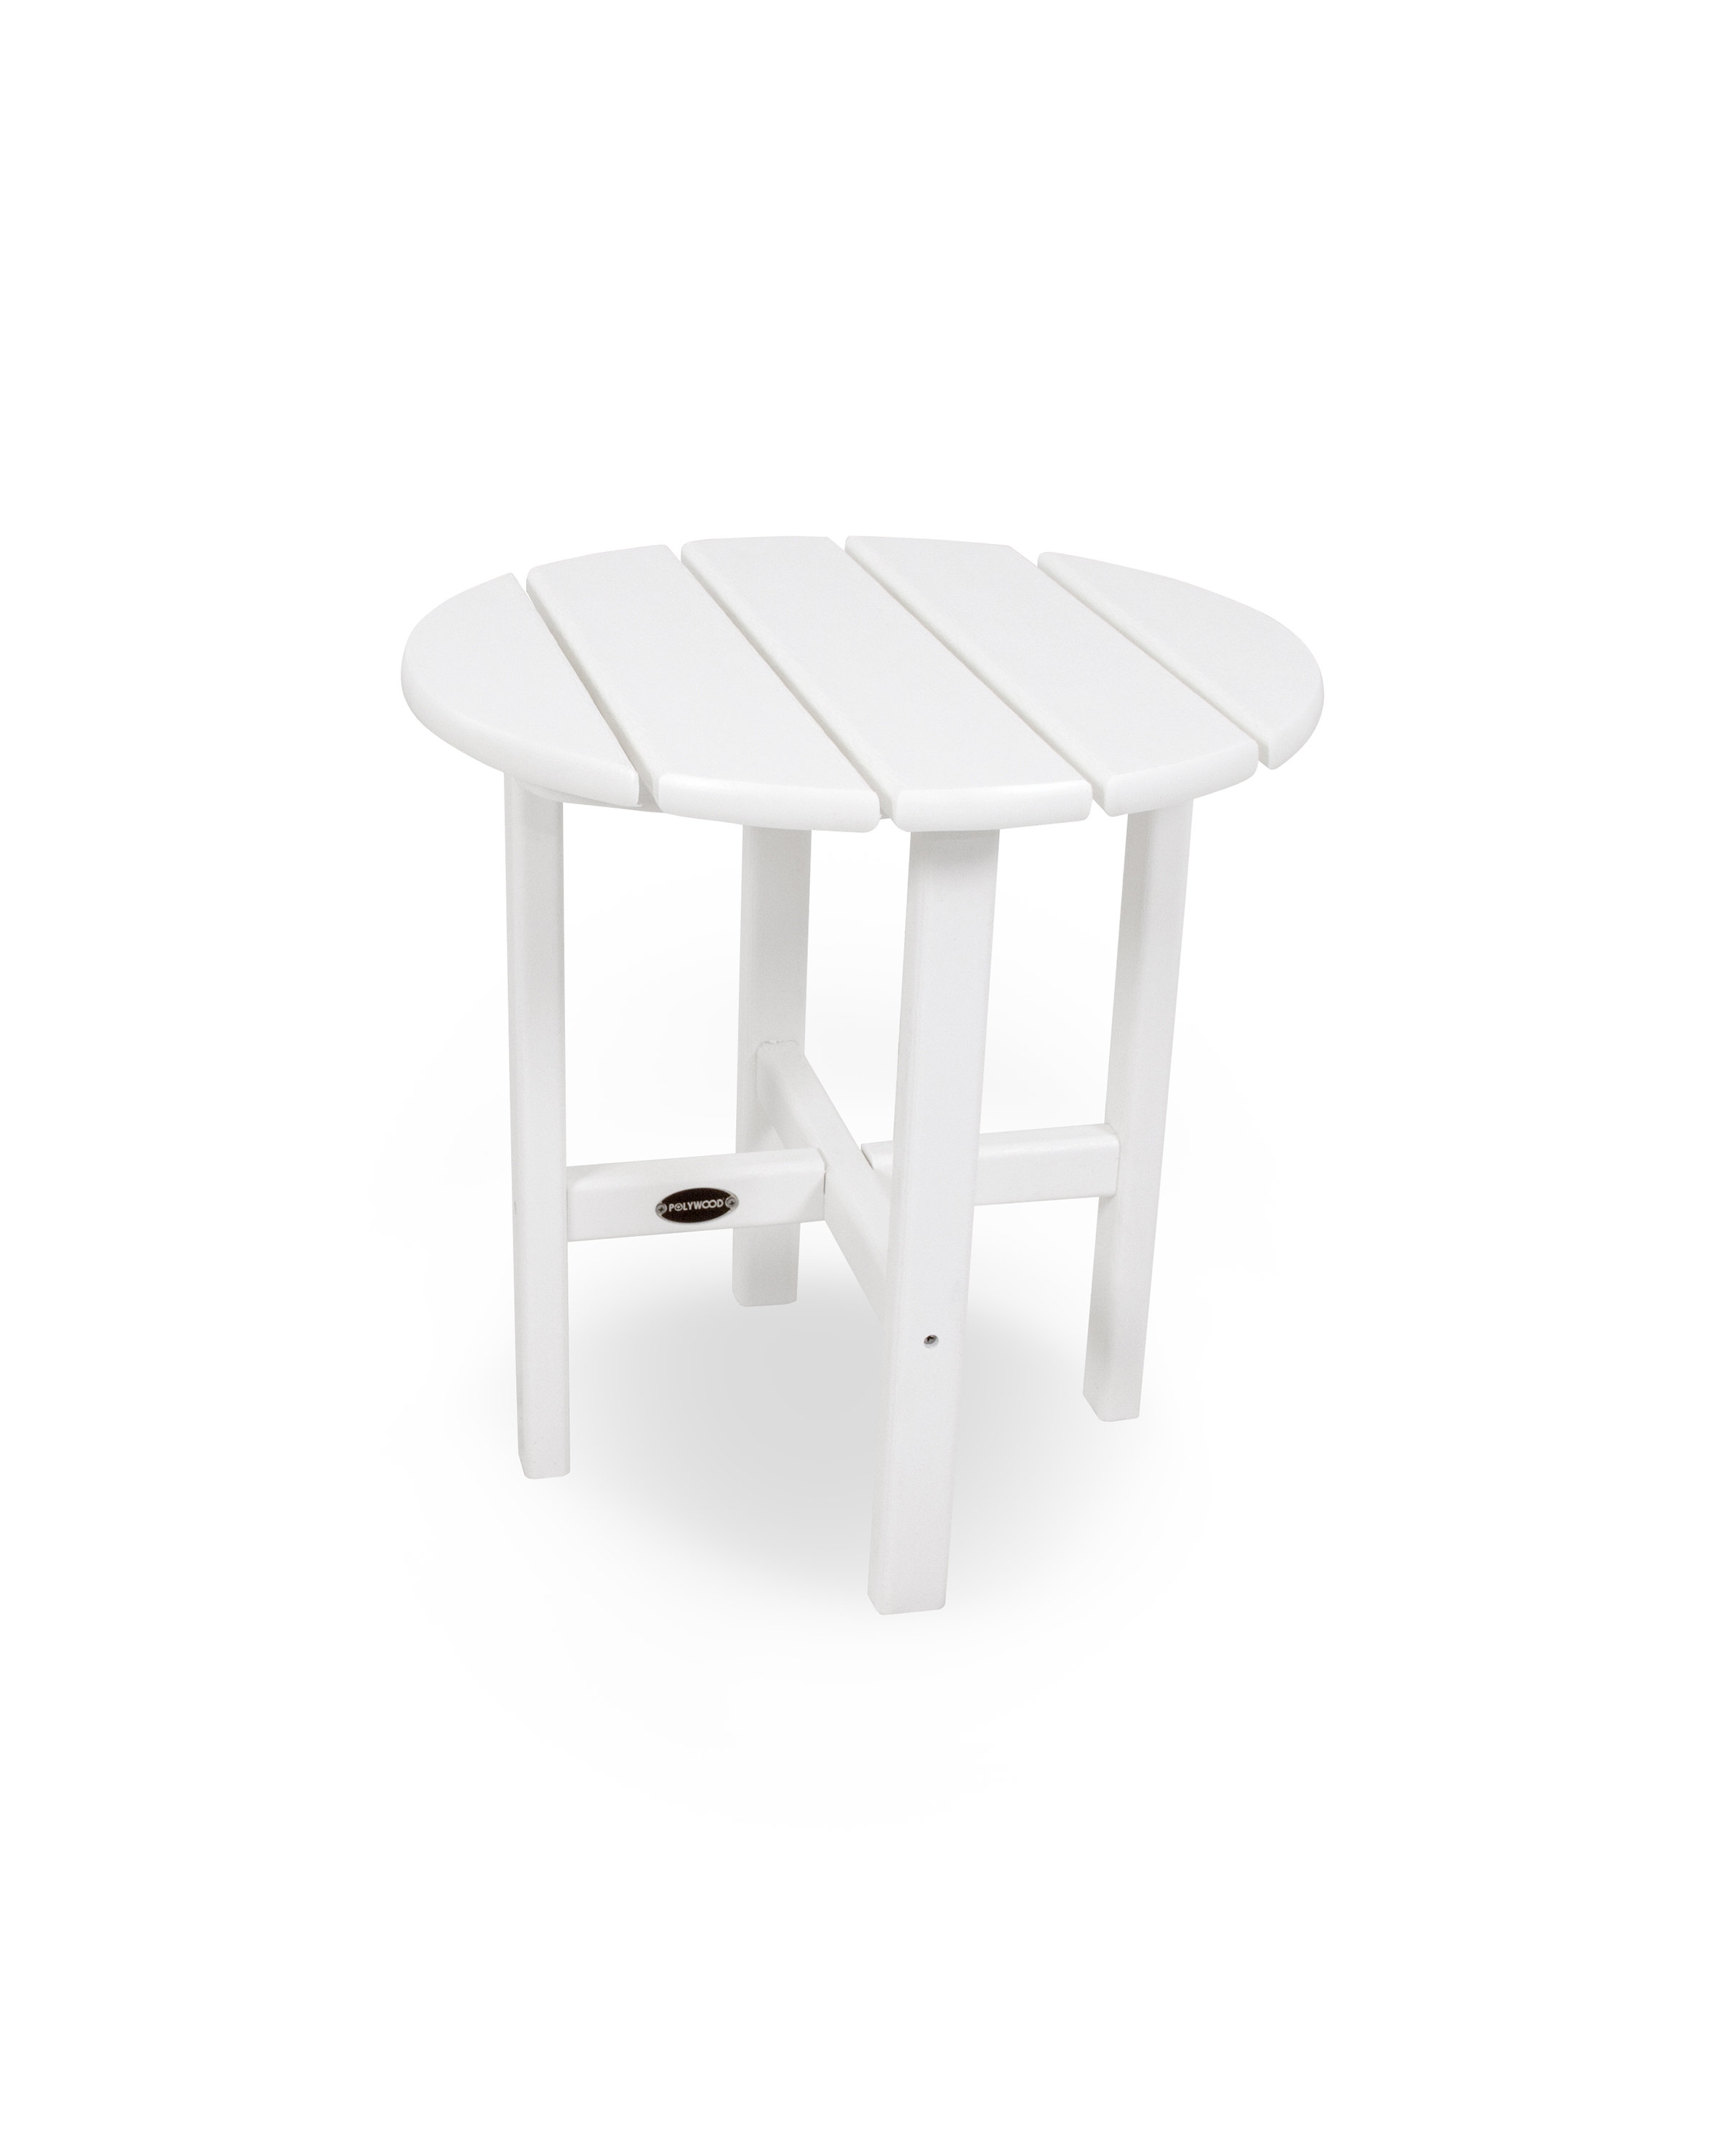 polywood side table reviews outdoor folding accent umbrella for outside tile top patio furniture storage box seat ikea rectangle dining cloth pottery barn reading lamp drum throne